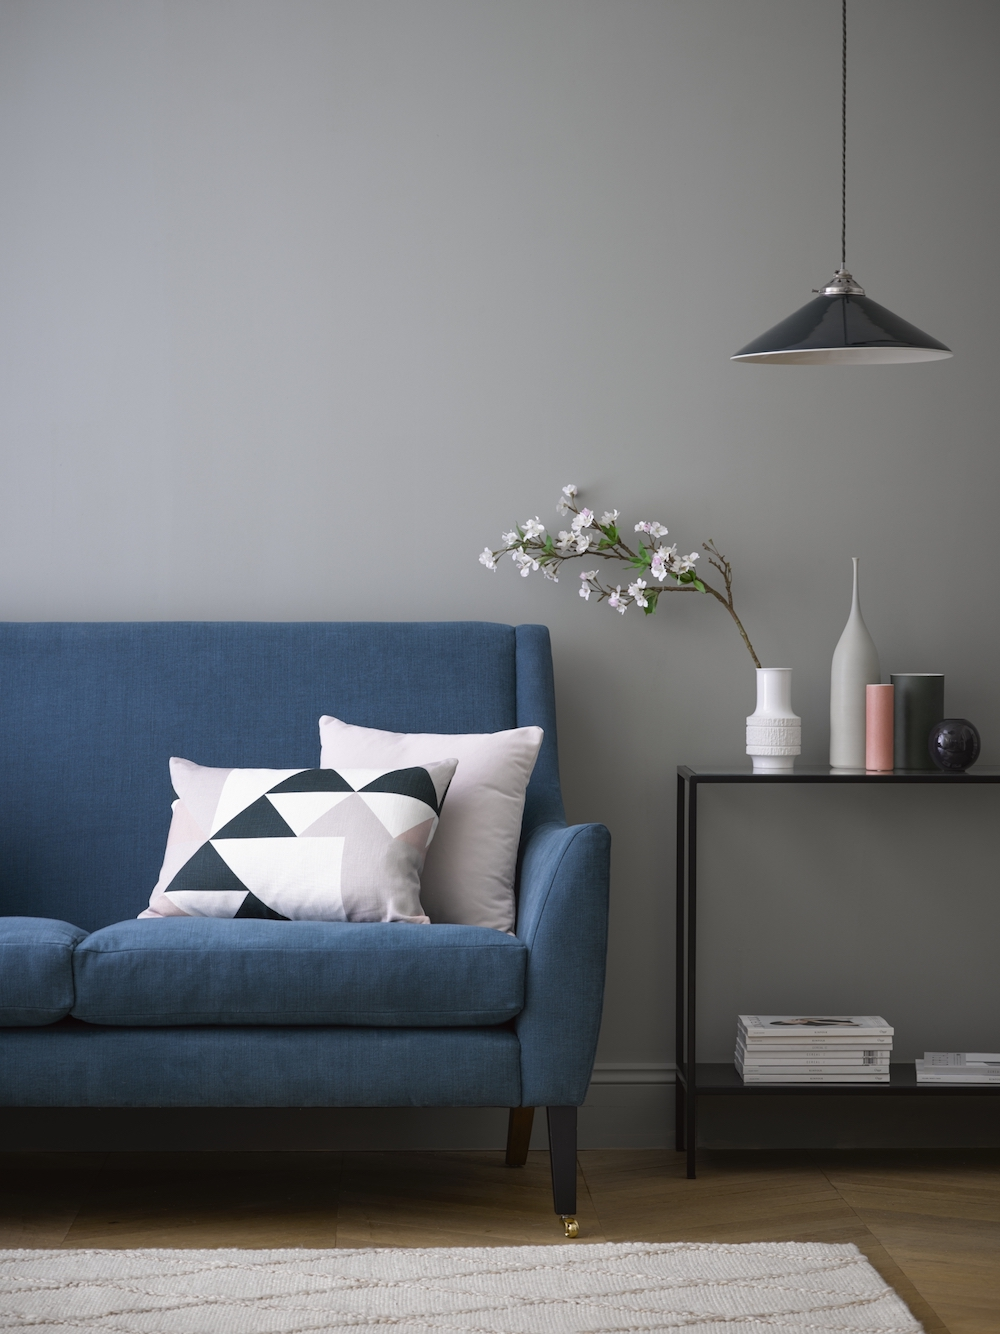 Sofa.com Walter two and a half seat sofa in Evergreen brushed linen cotton, Hepburn console table, House scatter cushion in Lychee smart velvet.jpg